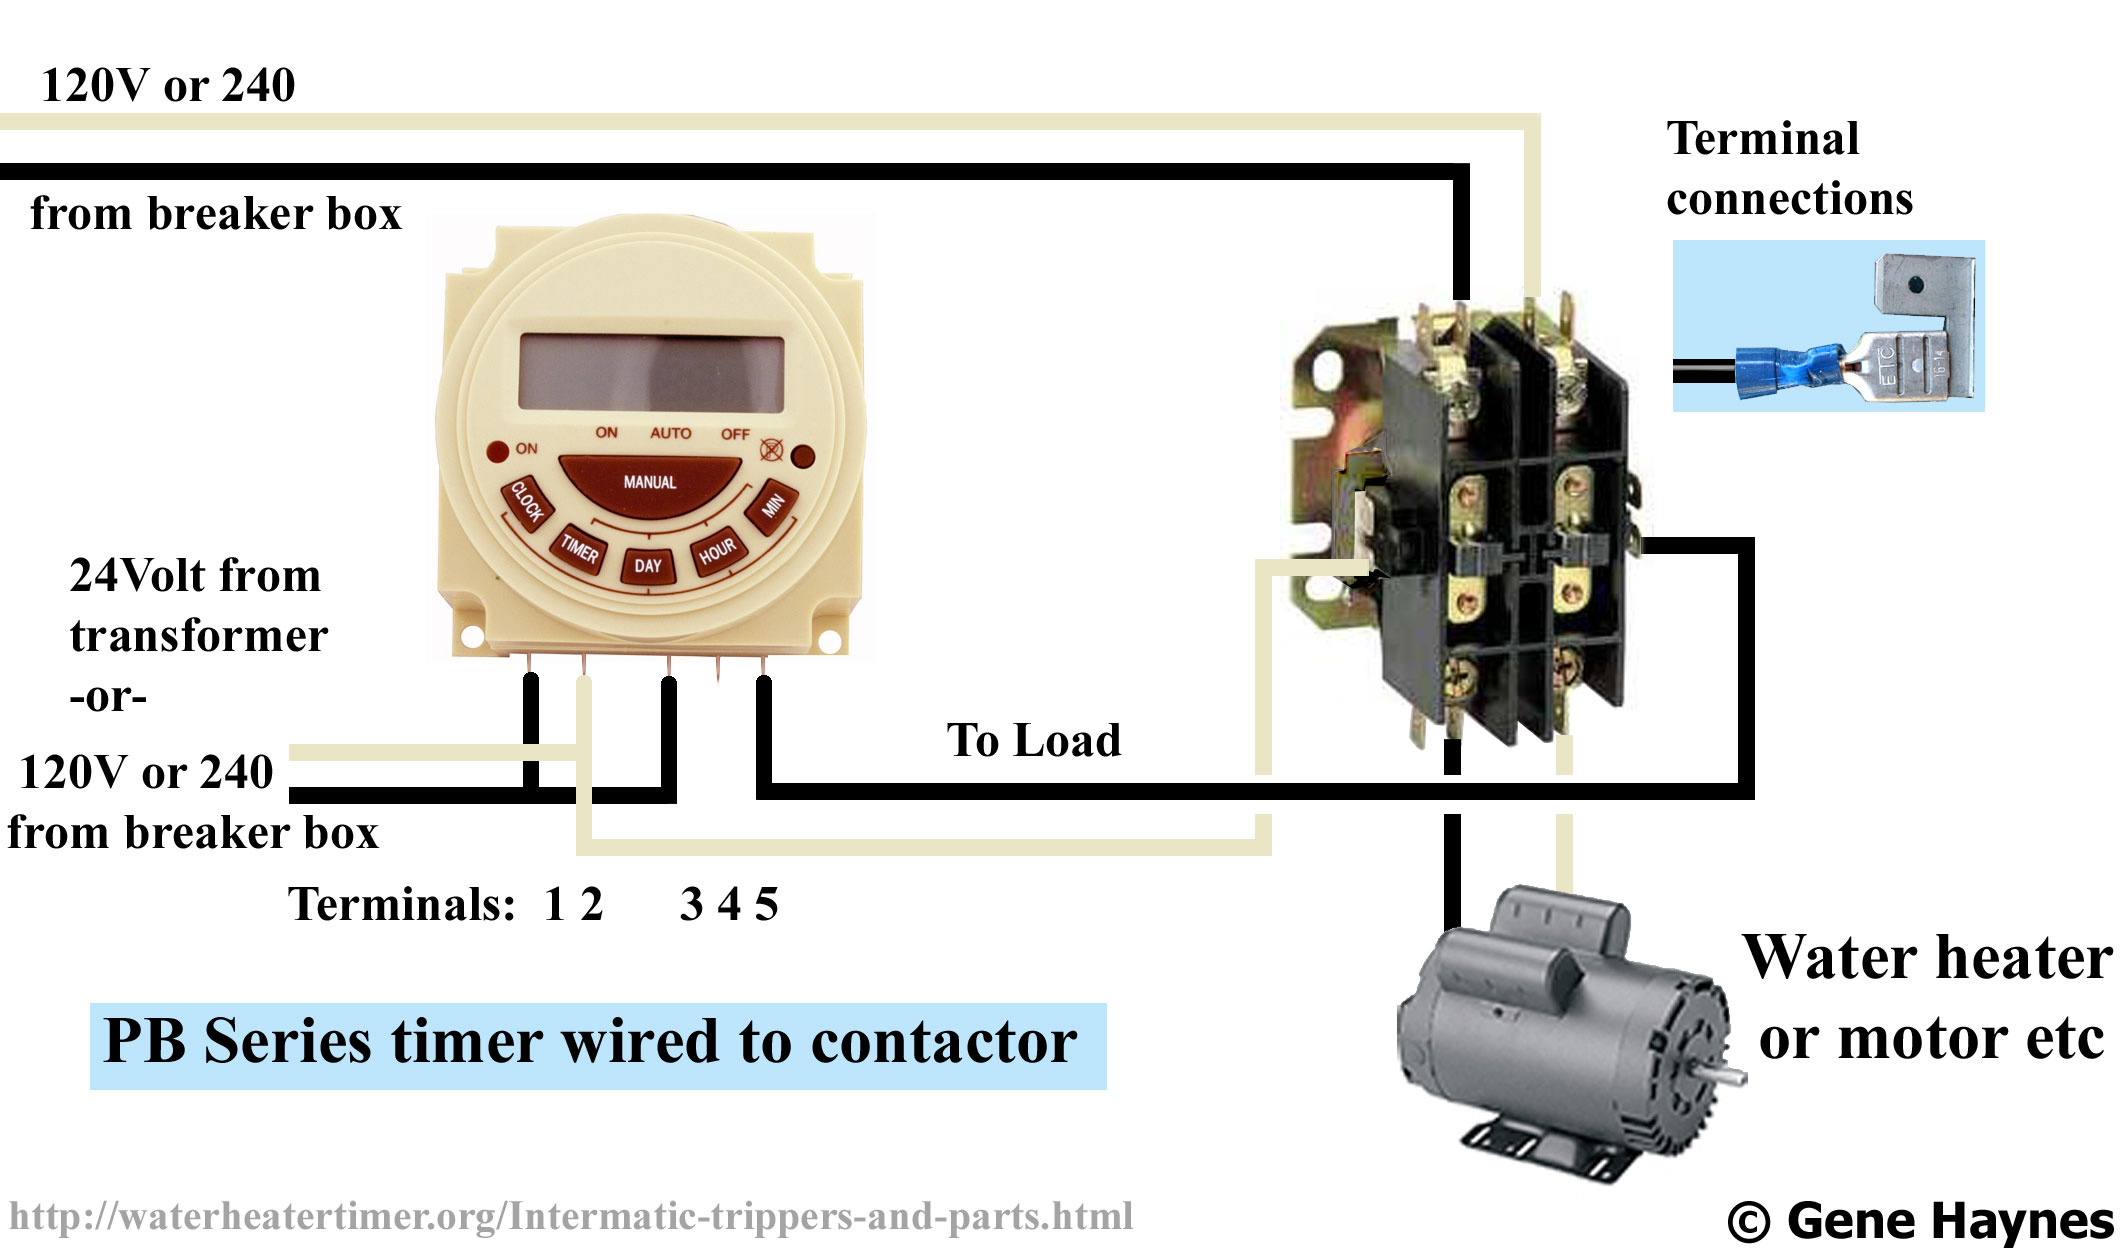 PB 300 series timer wiring motor large contactors timer and contactor wiring diagram at alyssarenee.co